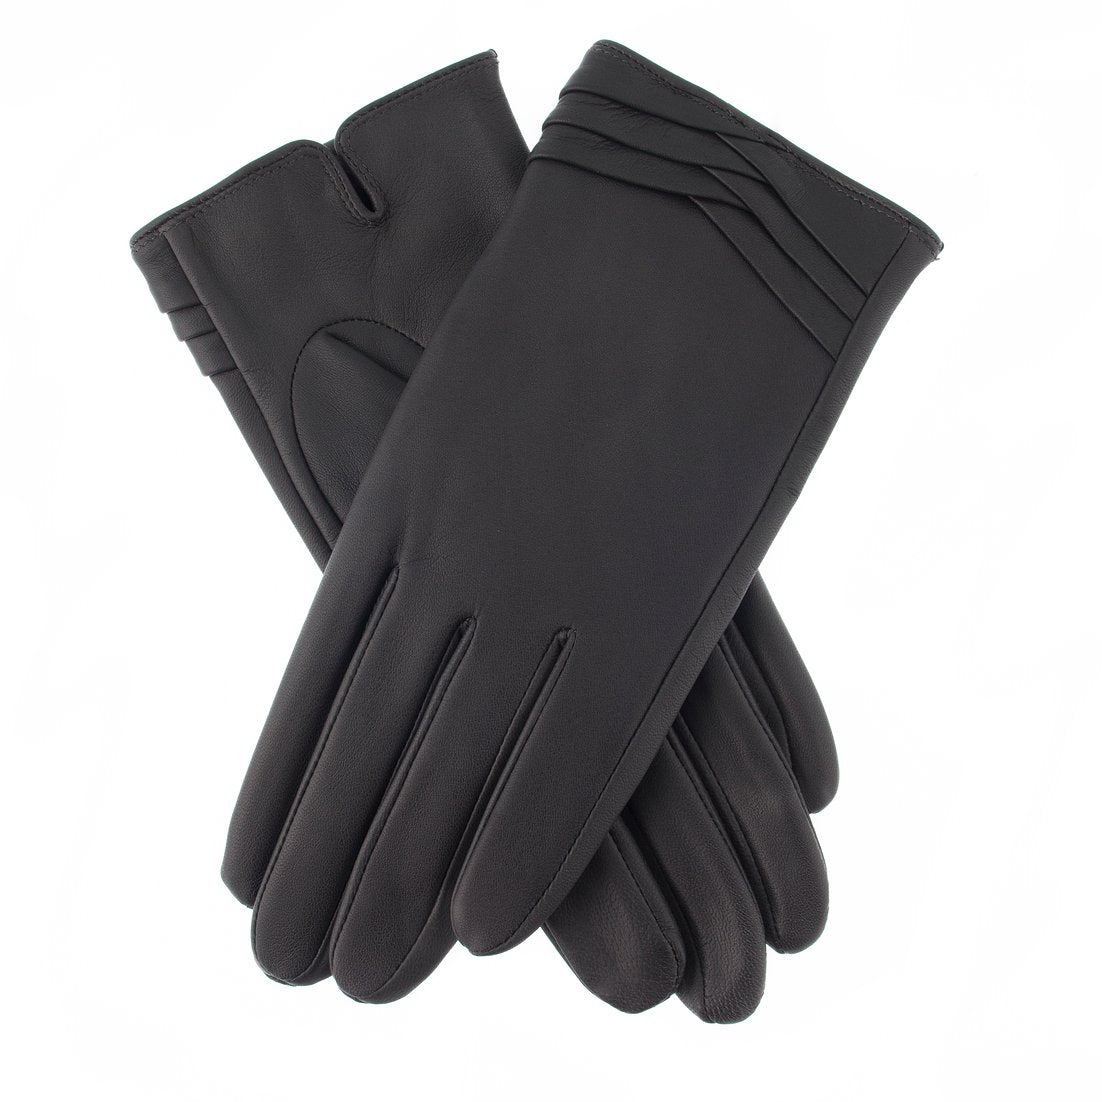 Dents 'Katrina' ladies leather glove with fold cuff detail, mid grey